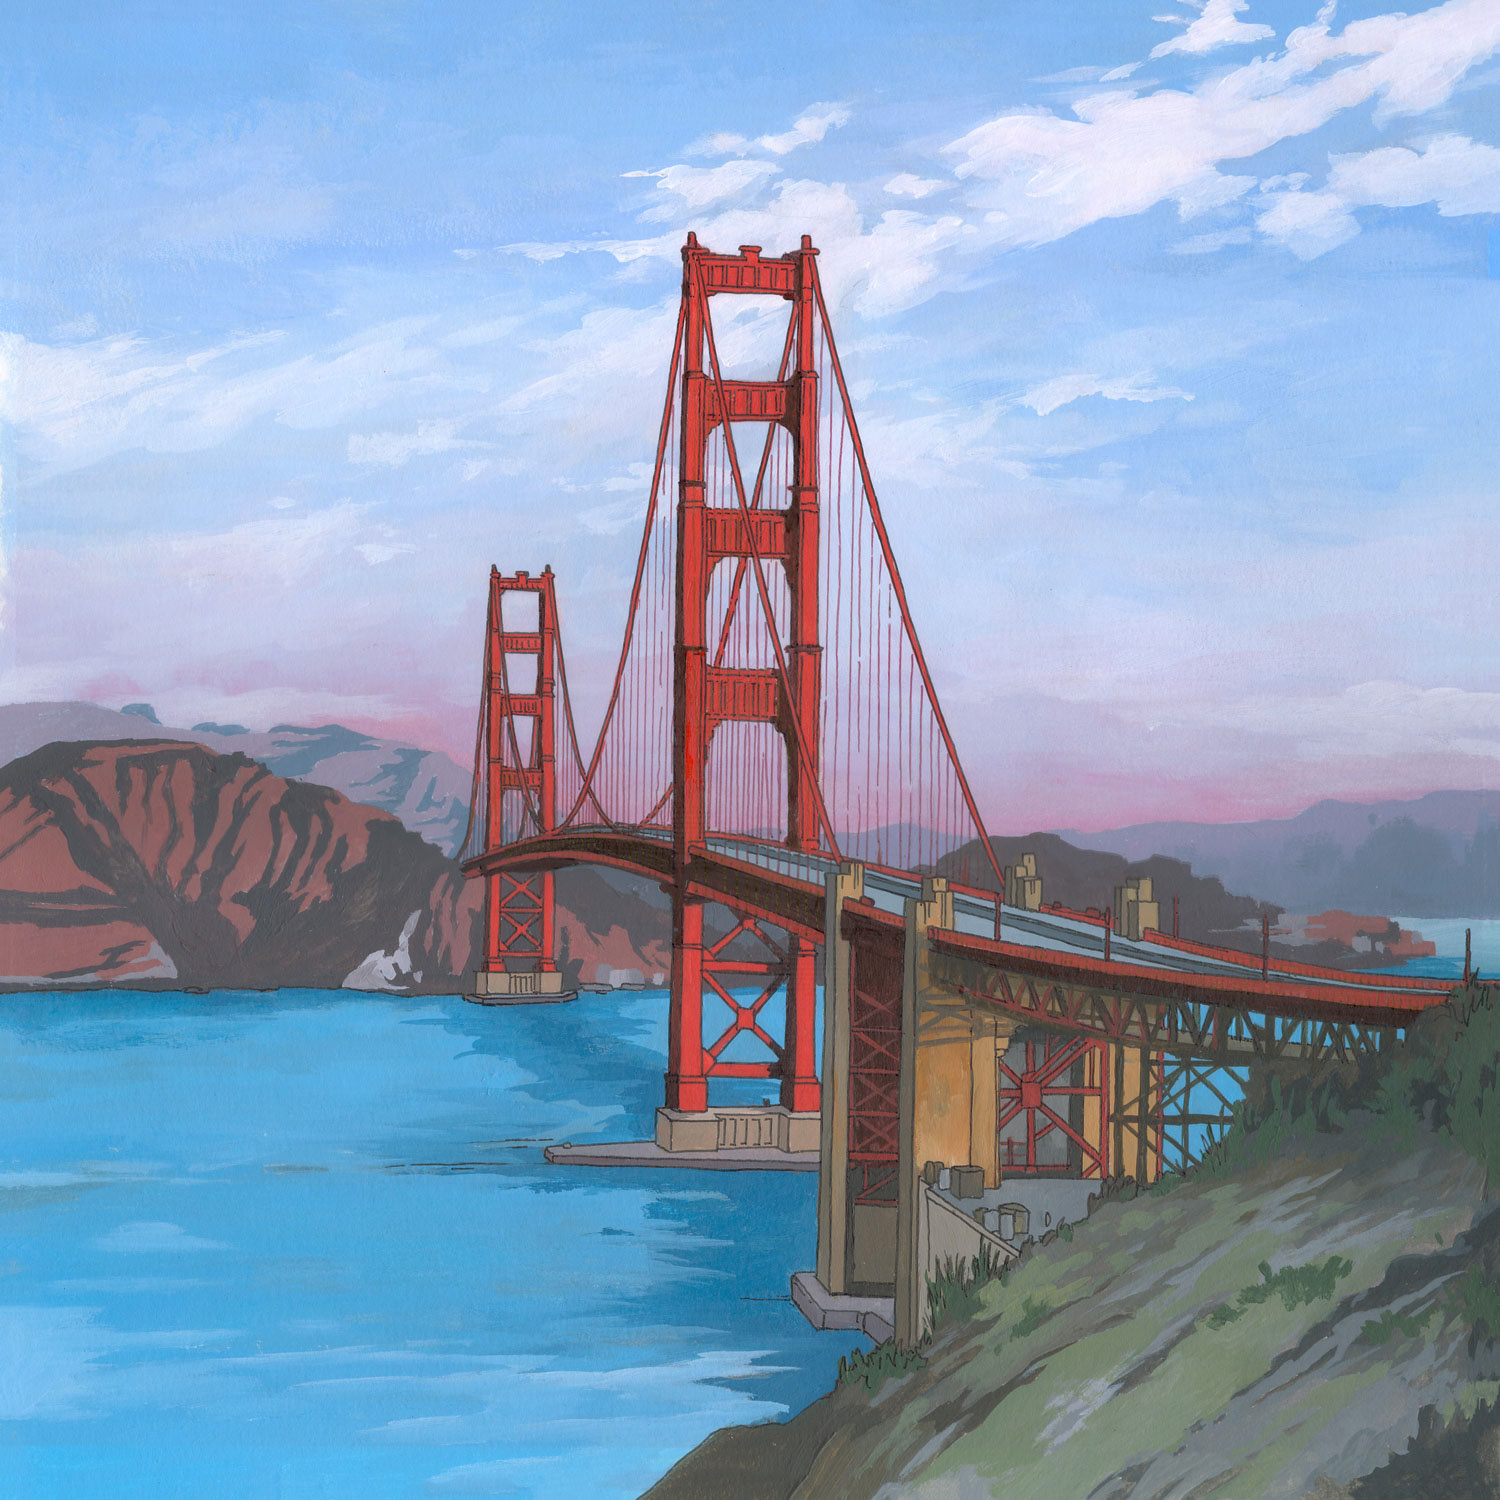 Illustration By Jonathan Golden Gate Bridge San Francisco Diagram Of The Is 29 X 29cm Created With Acrylic And Ink On Paper I Particularly Love Looking Through Photographs Featuring This